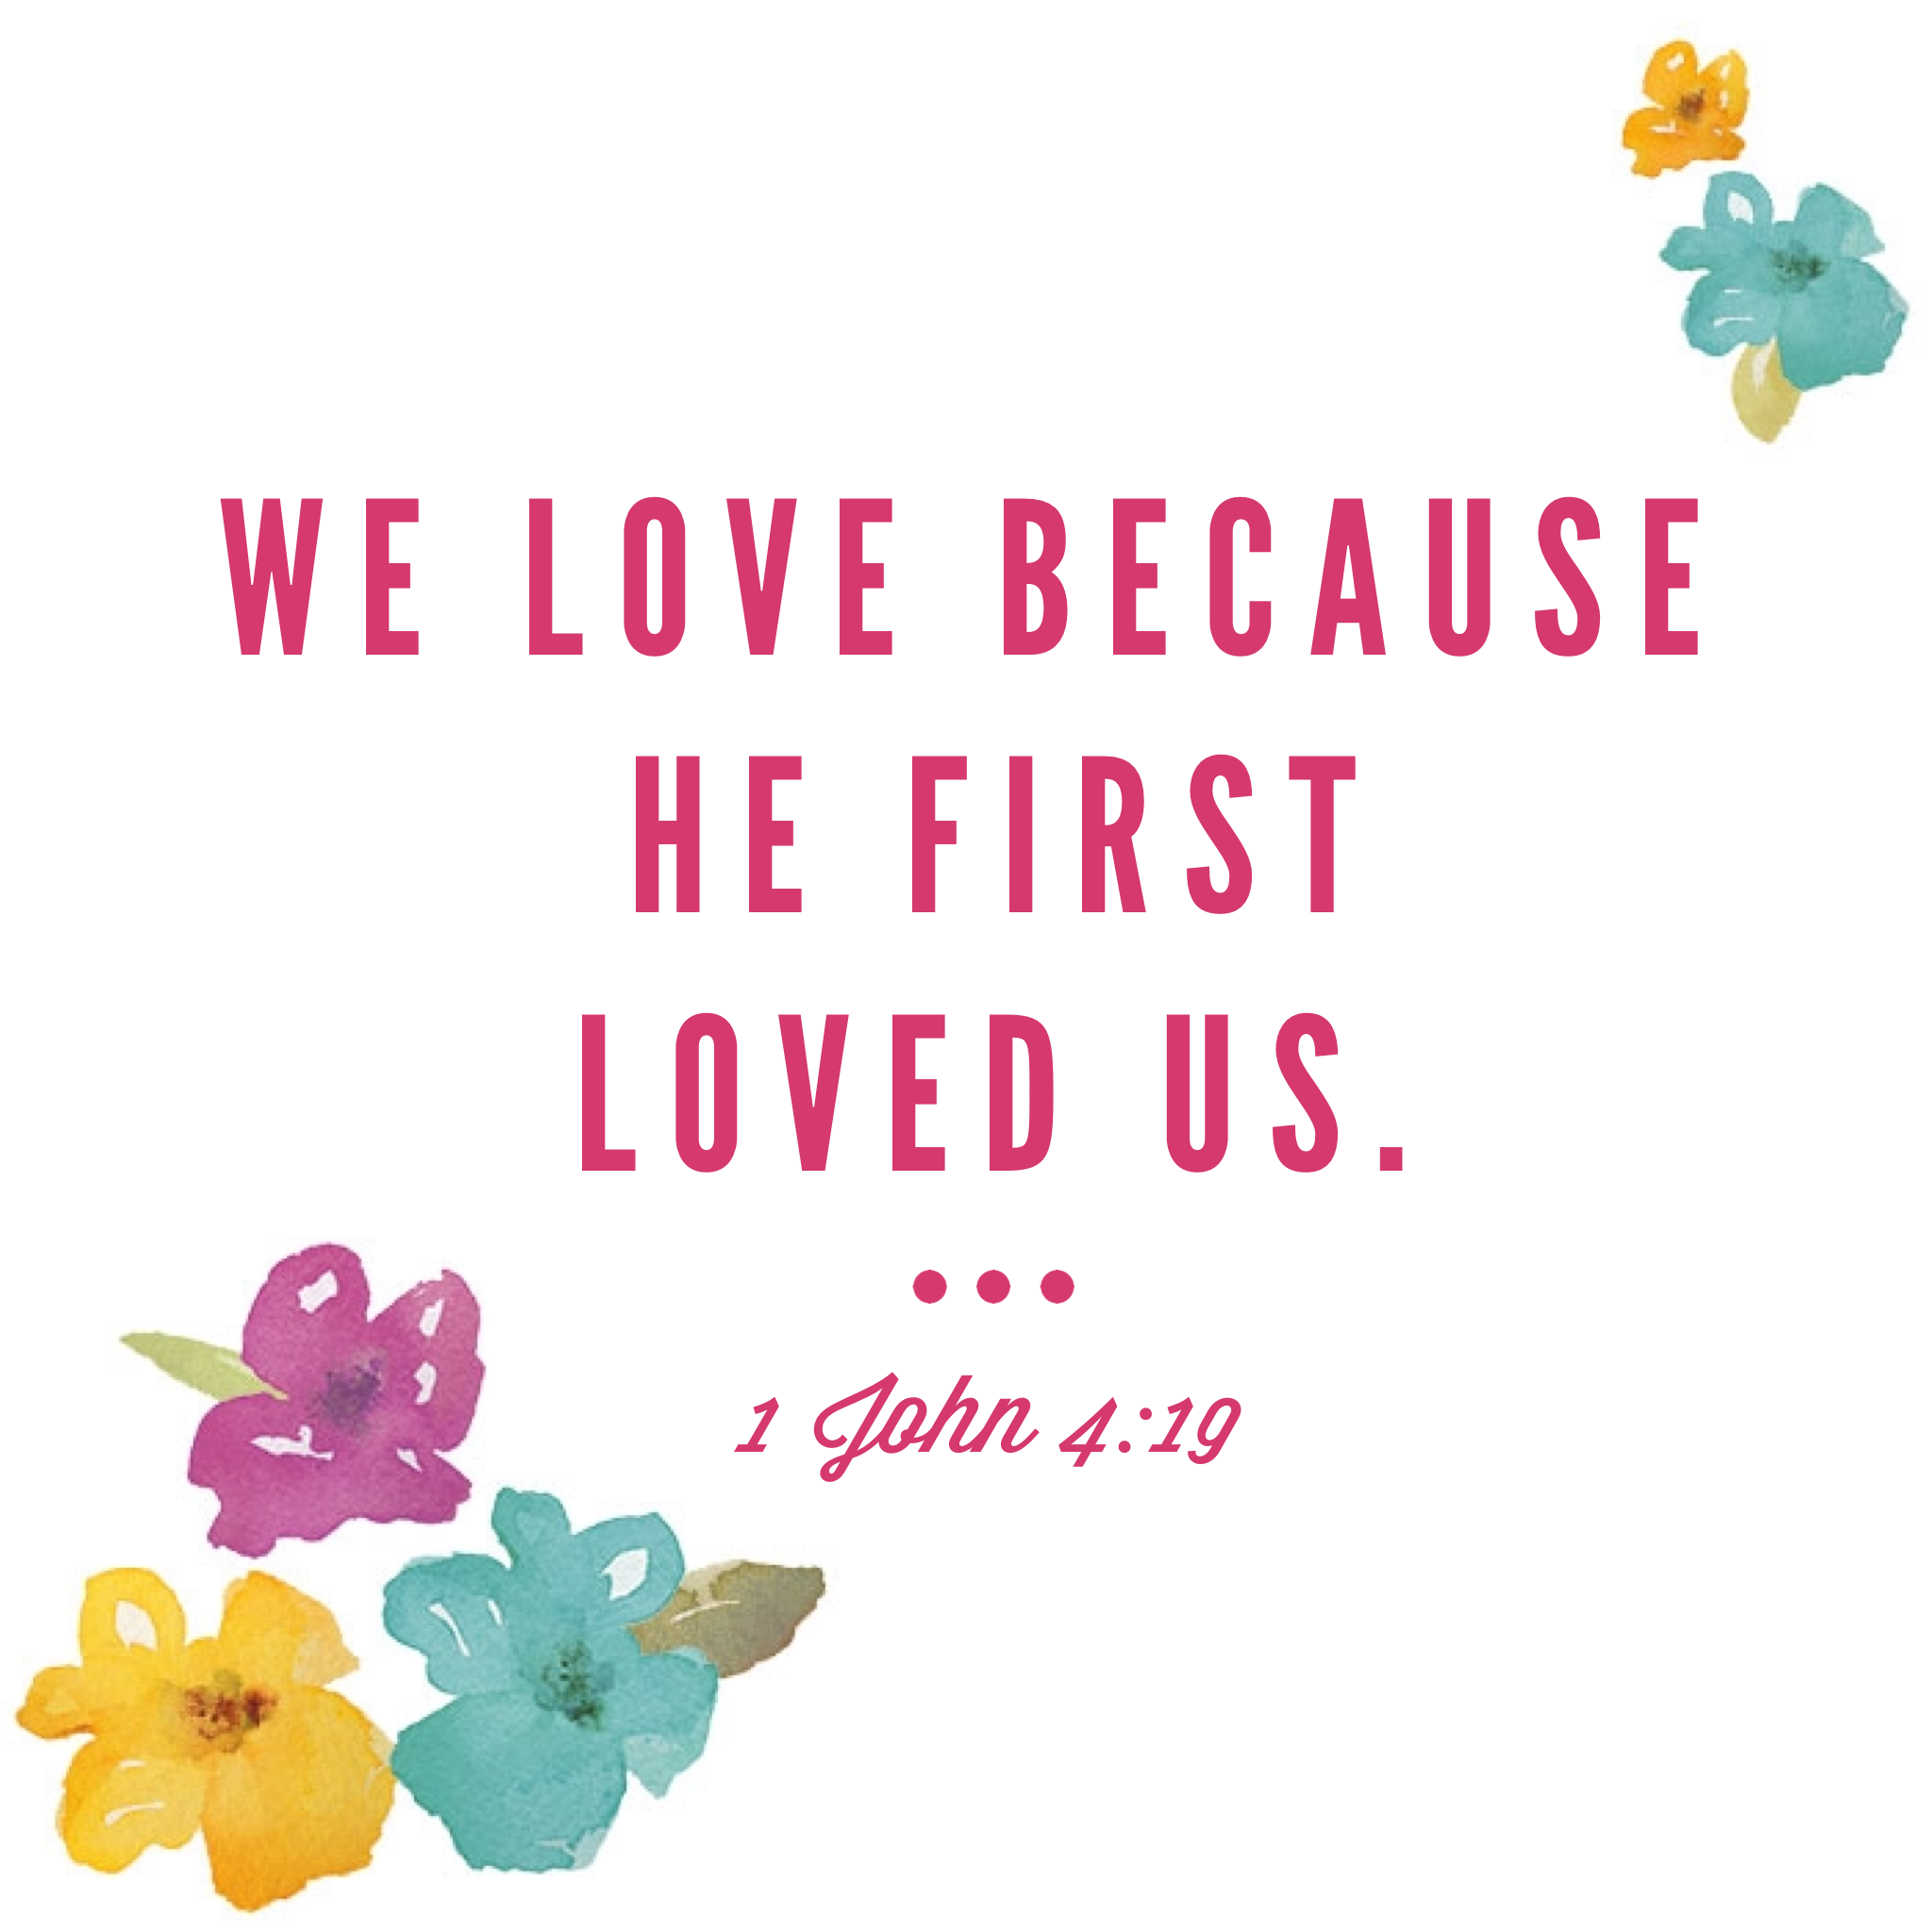 We love because he first loved us. - 1 John 4,19